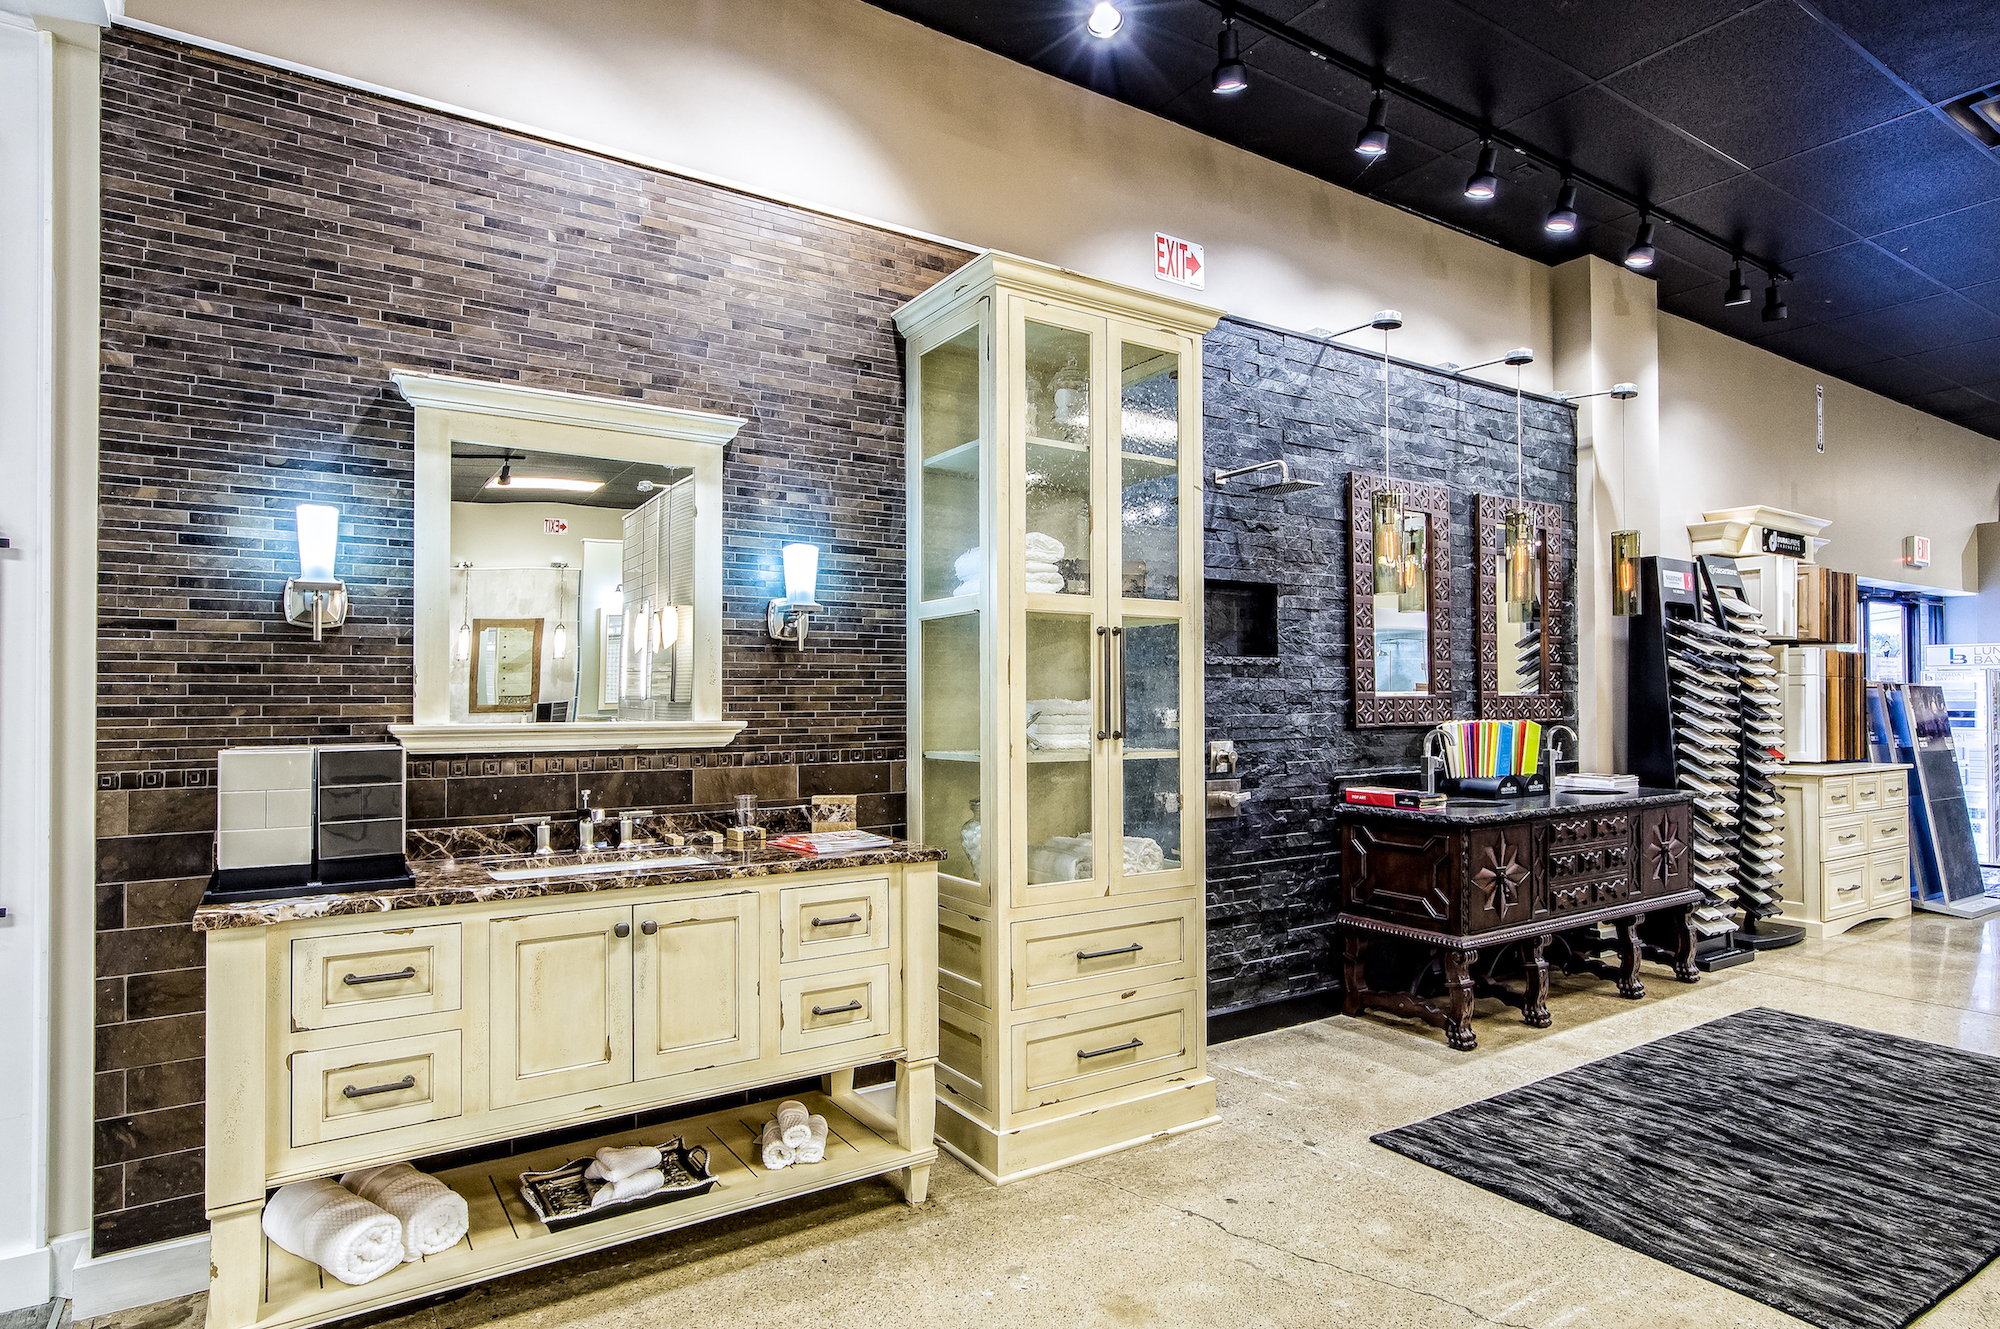 BathRoom Remodeling Showroom, Columbus Ohio, Dream Baths ...